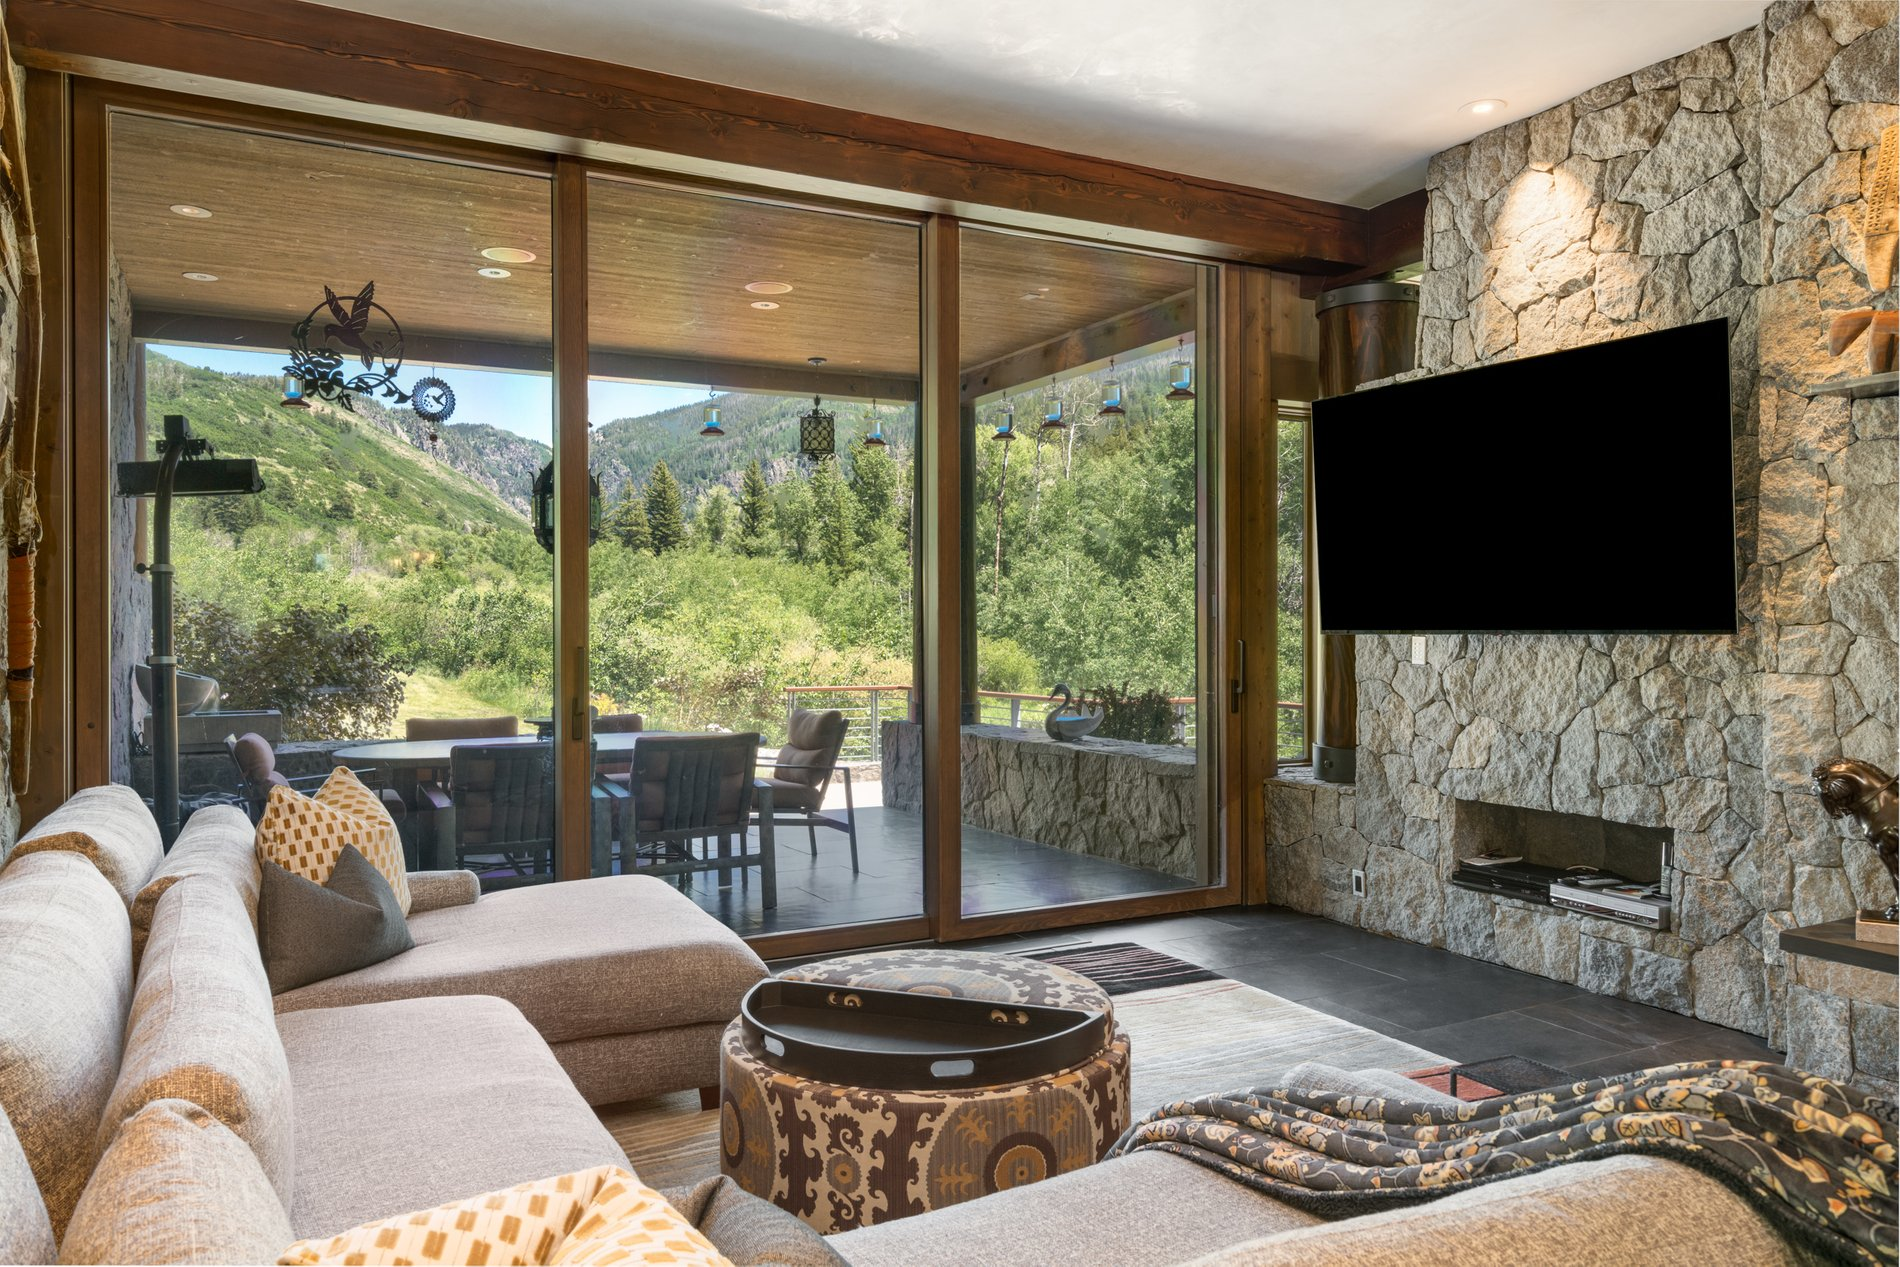 Indoor/outdoor living room leading to a covered patio area. Gliding wood patio doors from floor to ceiling. modern rustic home.